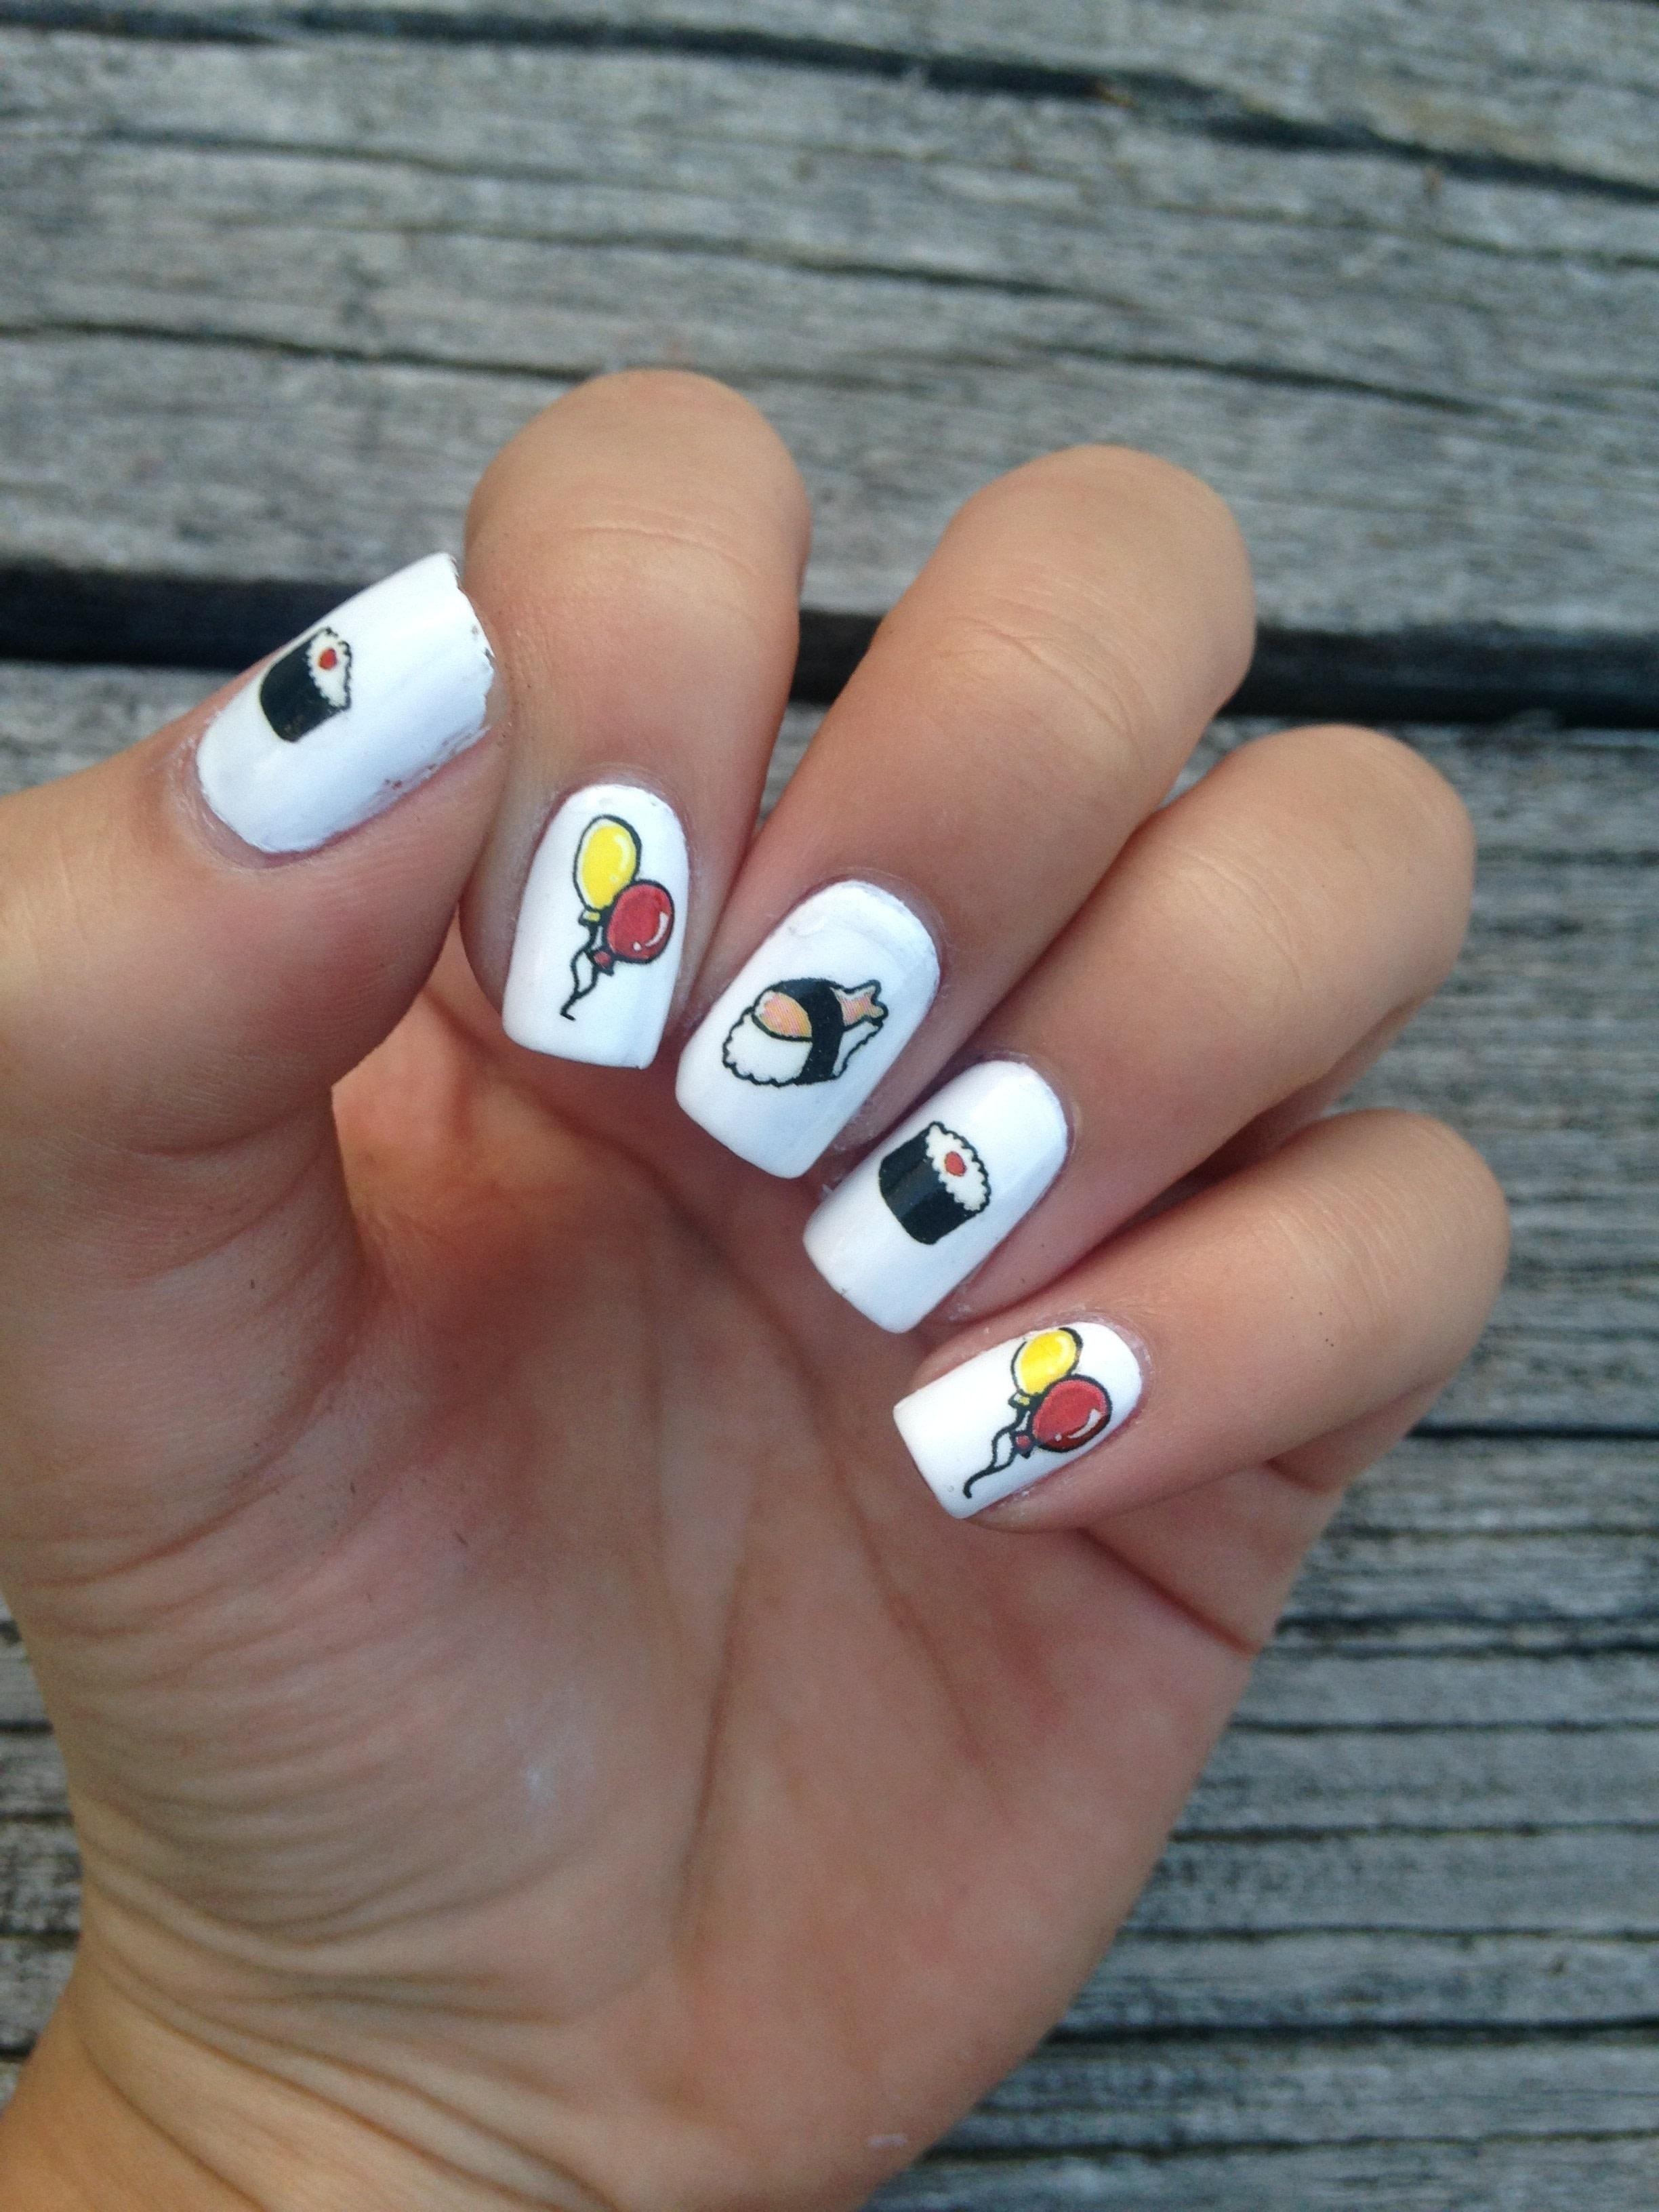 Sushi Nails · How To Paint A Food Nail · Beauty On Cut Out